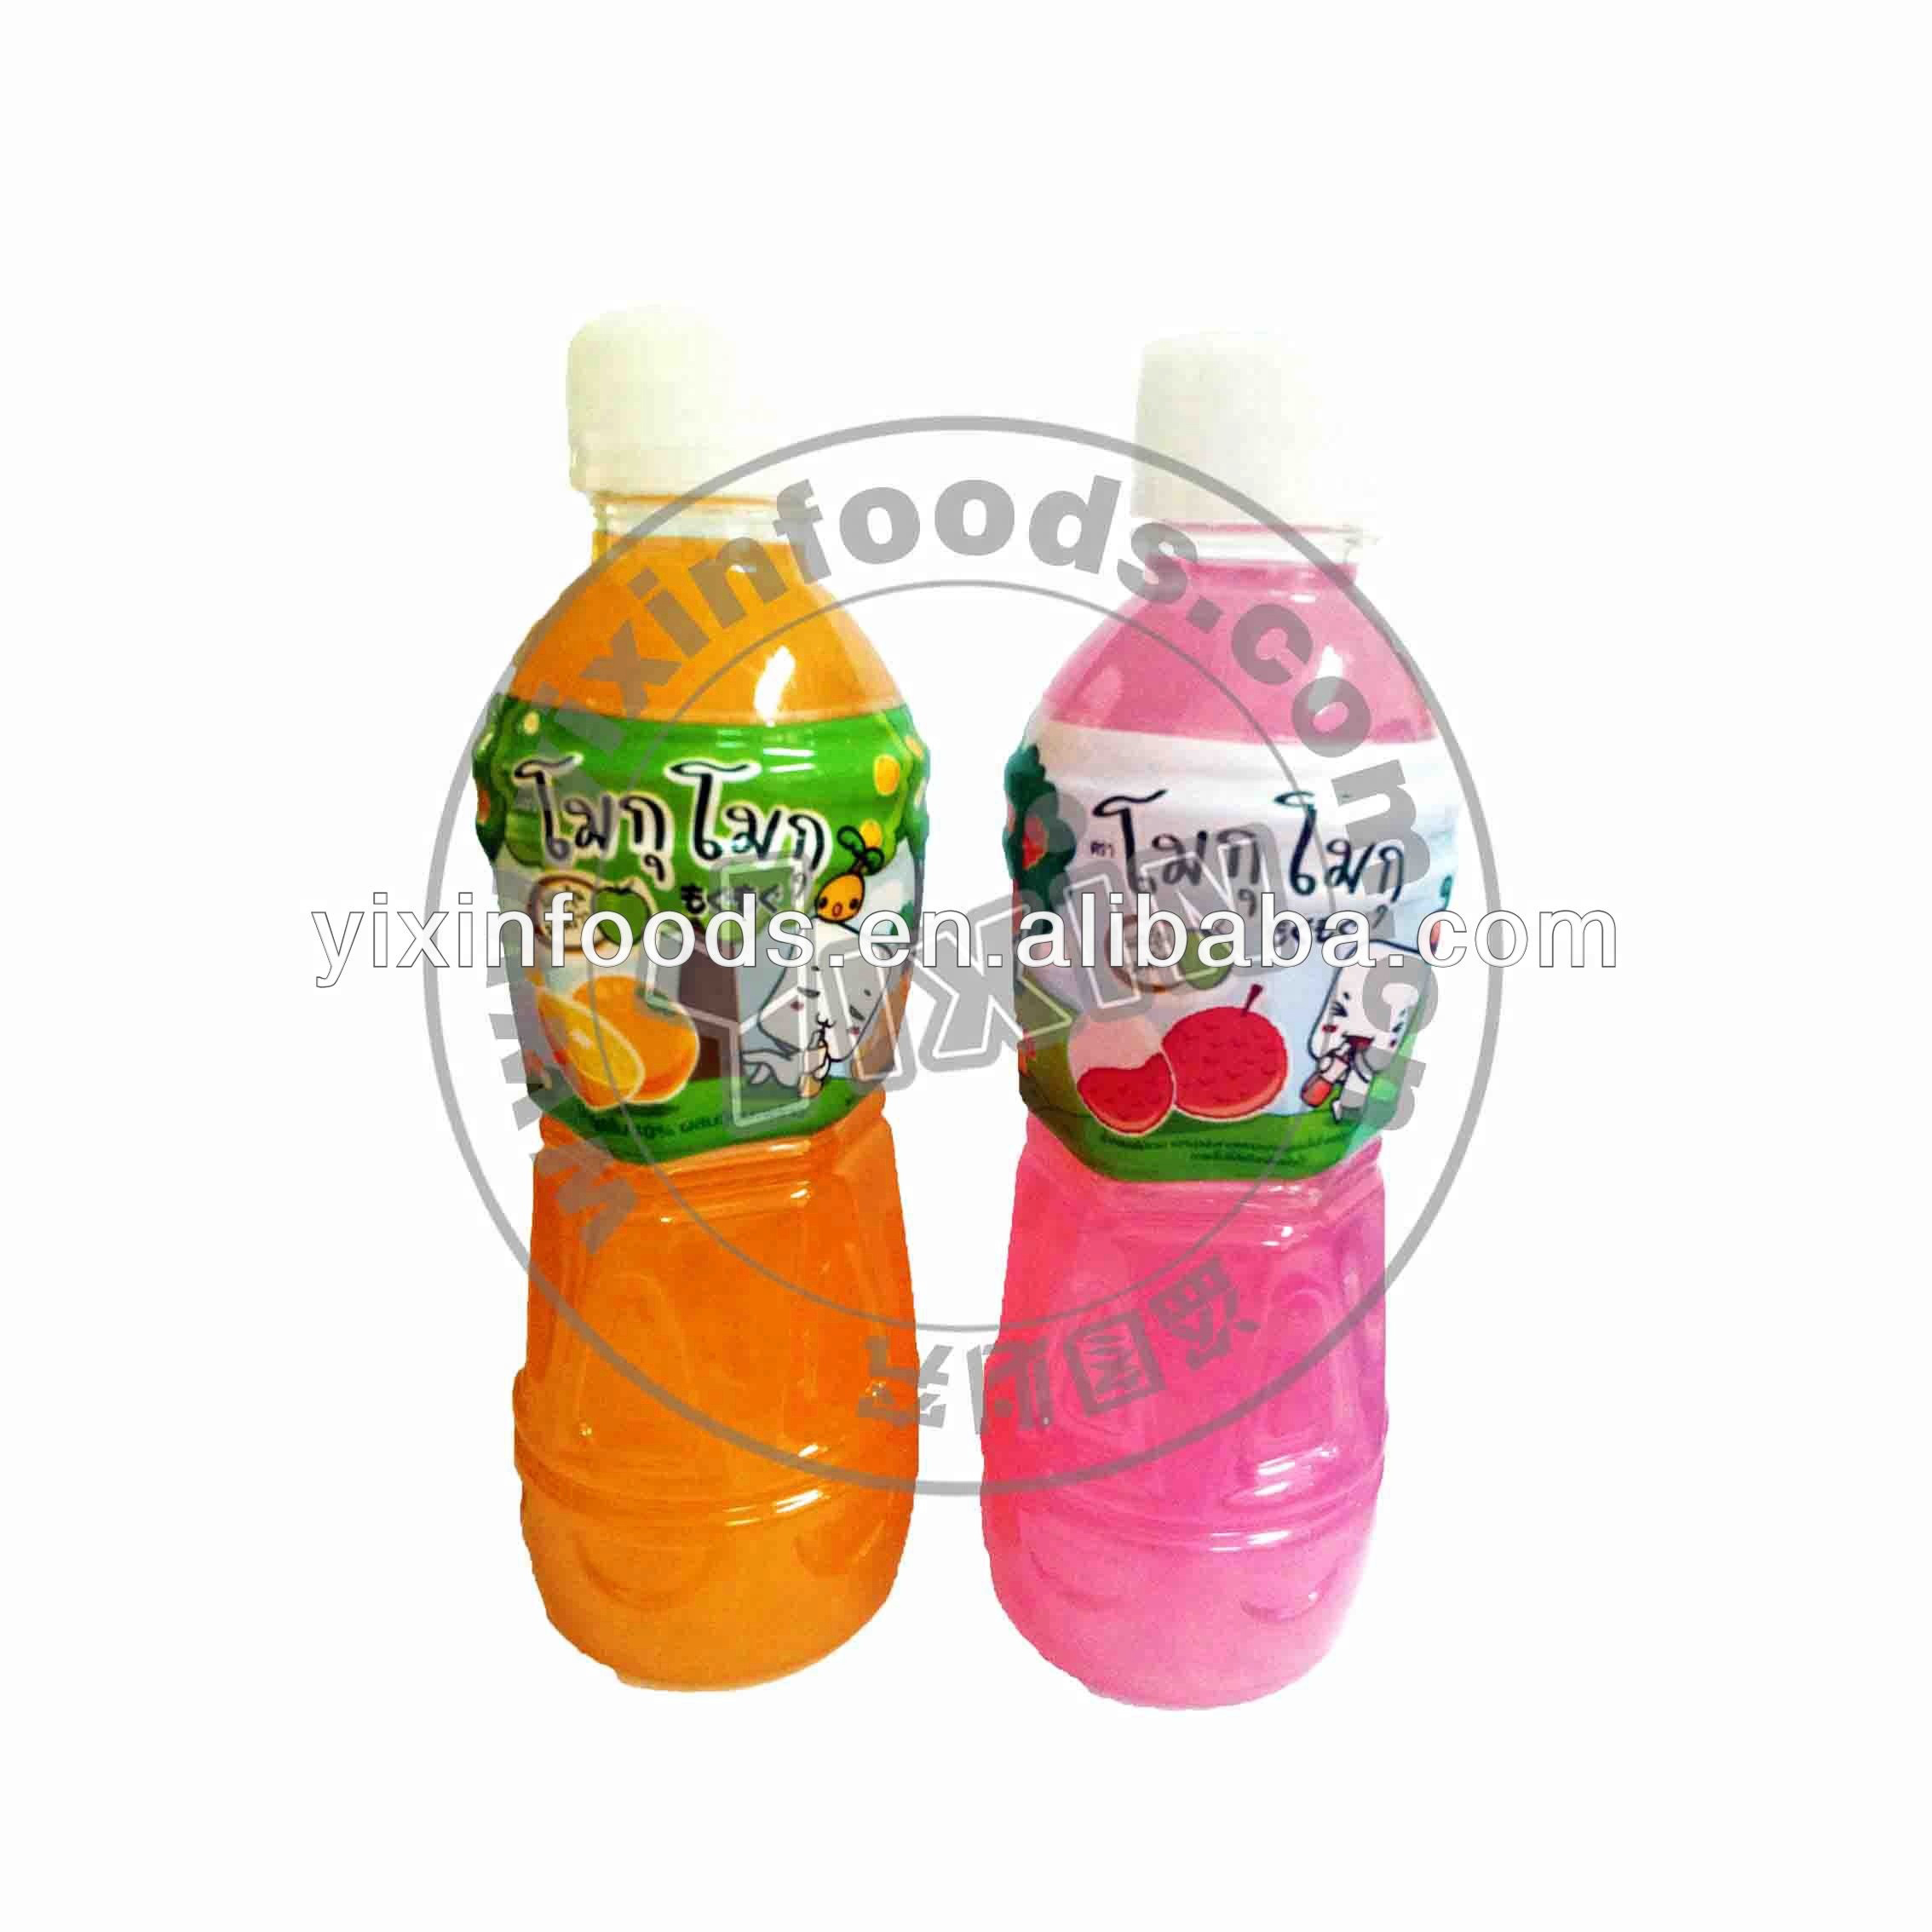 New product Mogu Mogu <strong>fruit</strong> juice drink